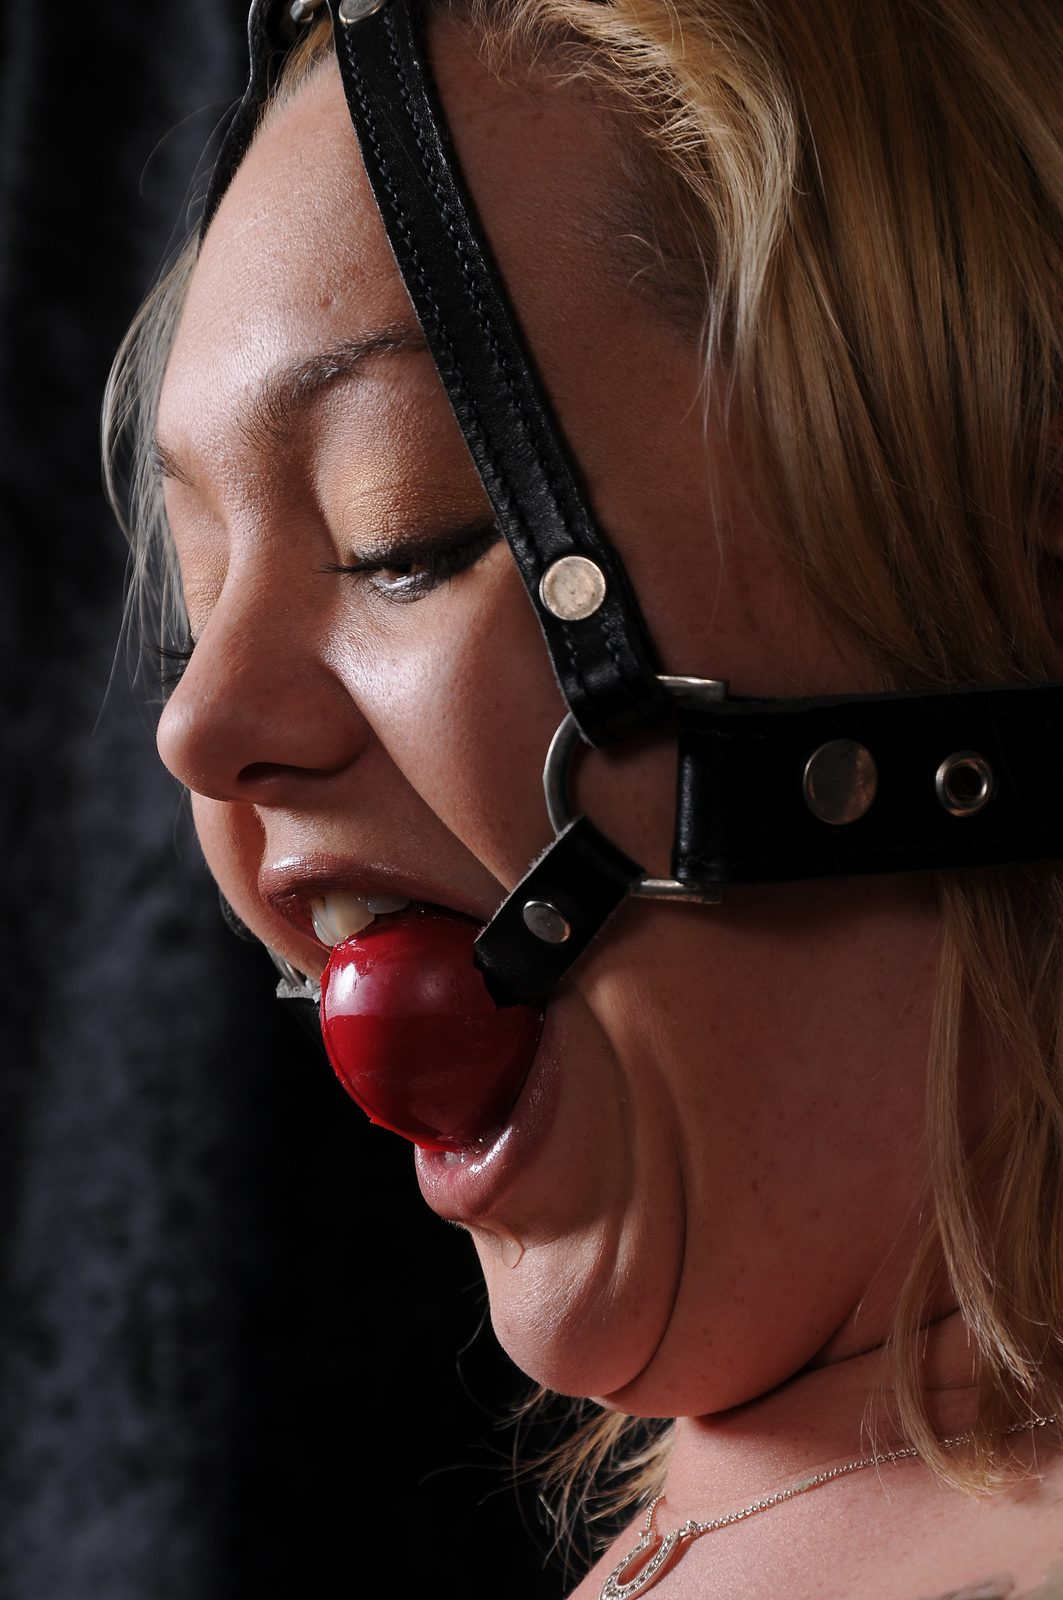 submissive with two doms